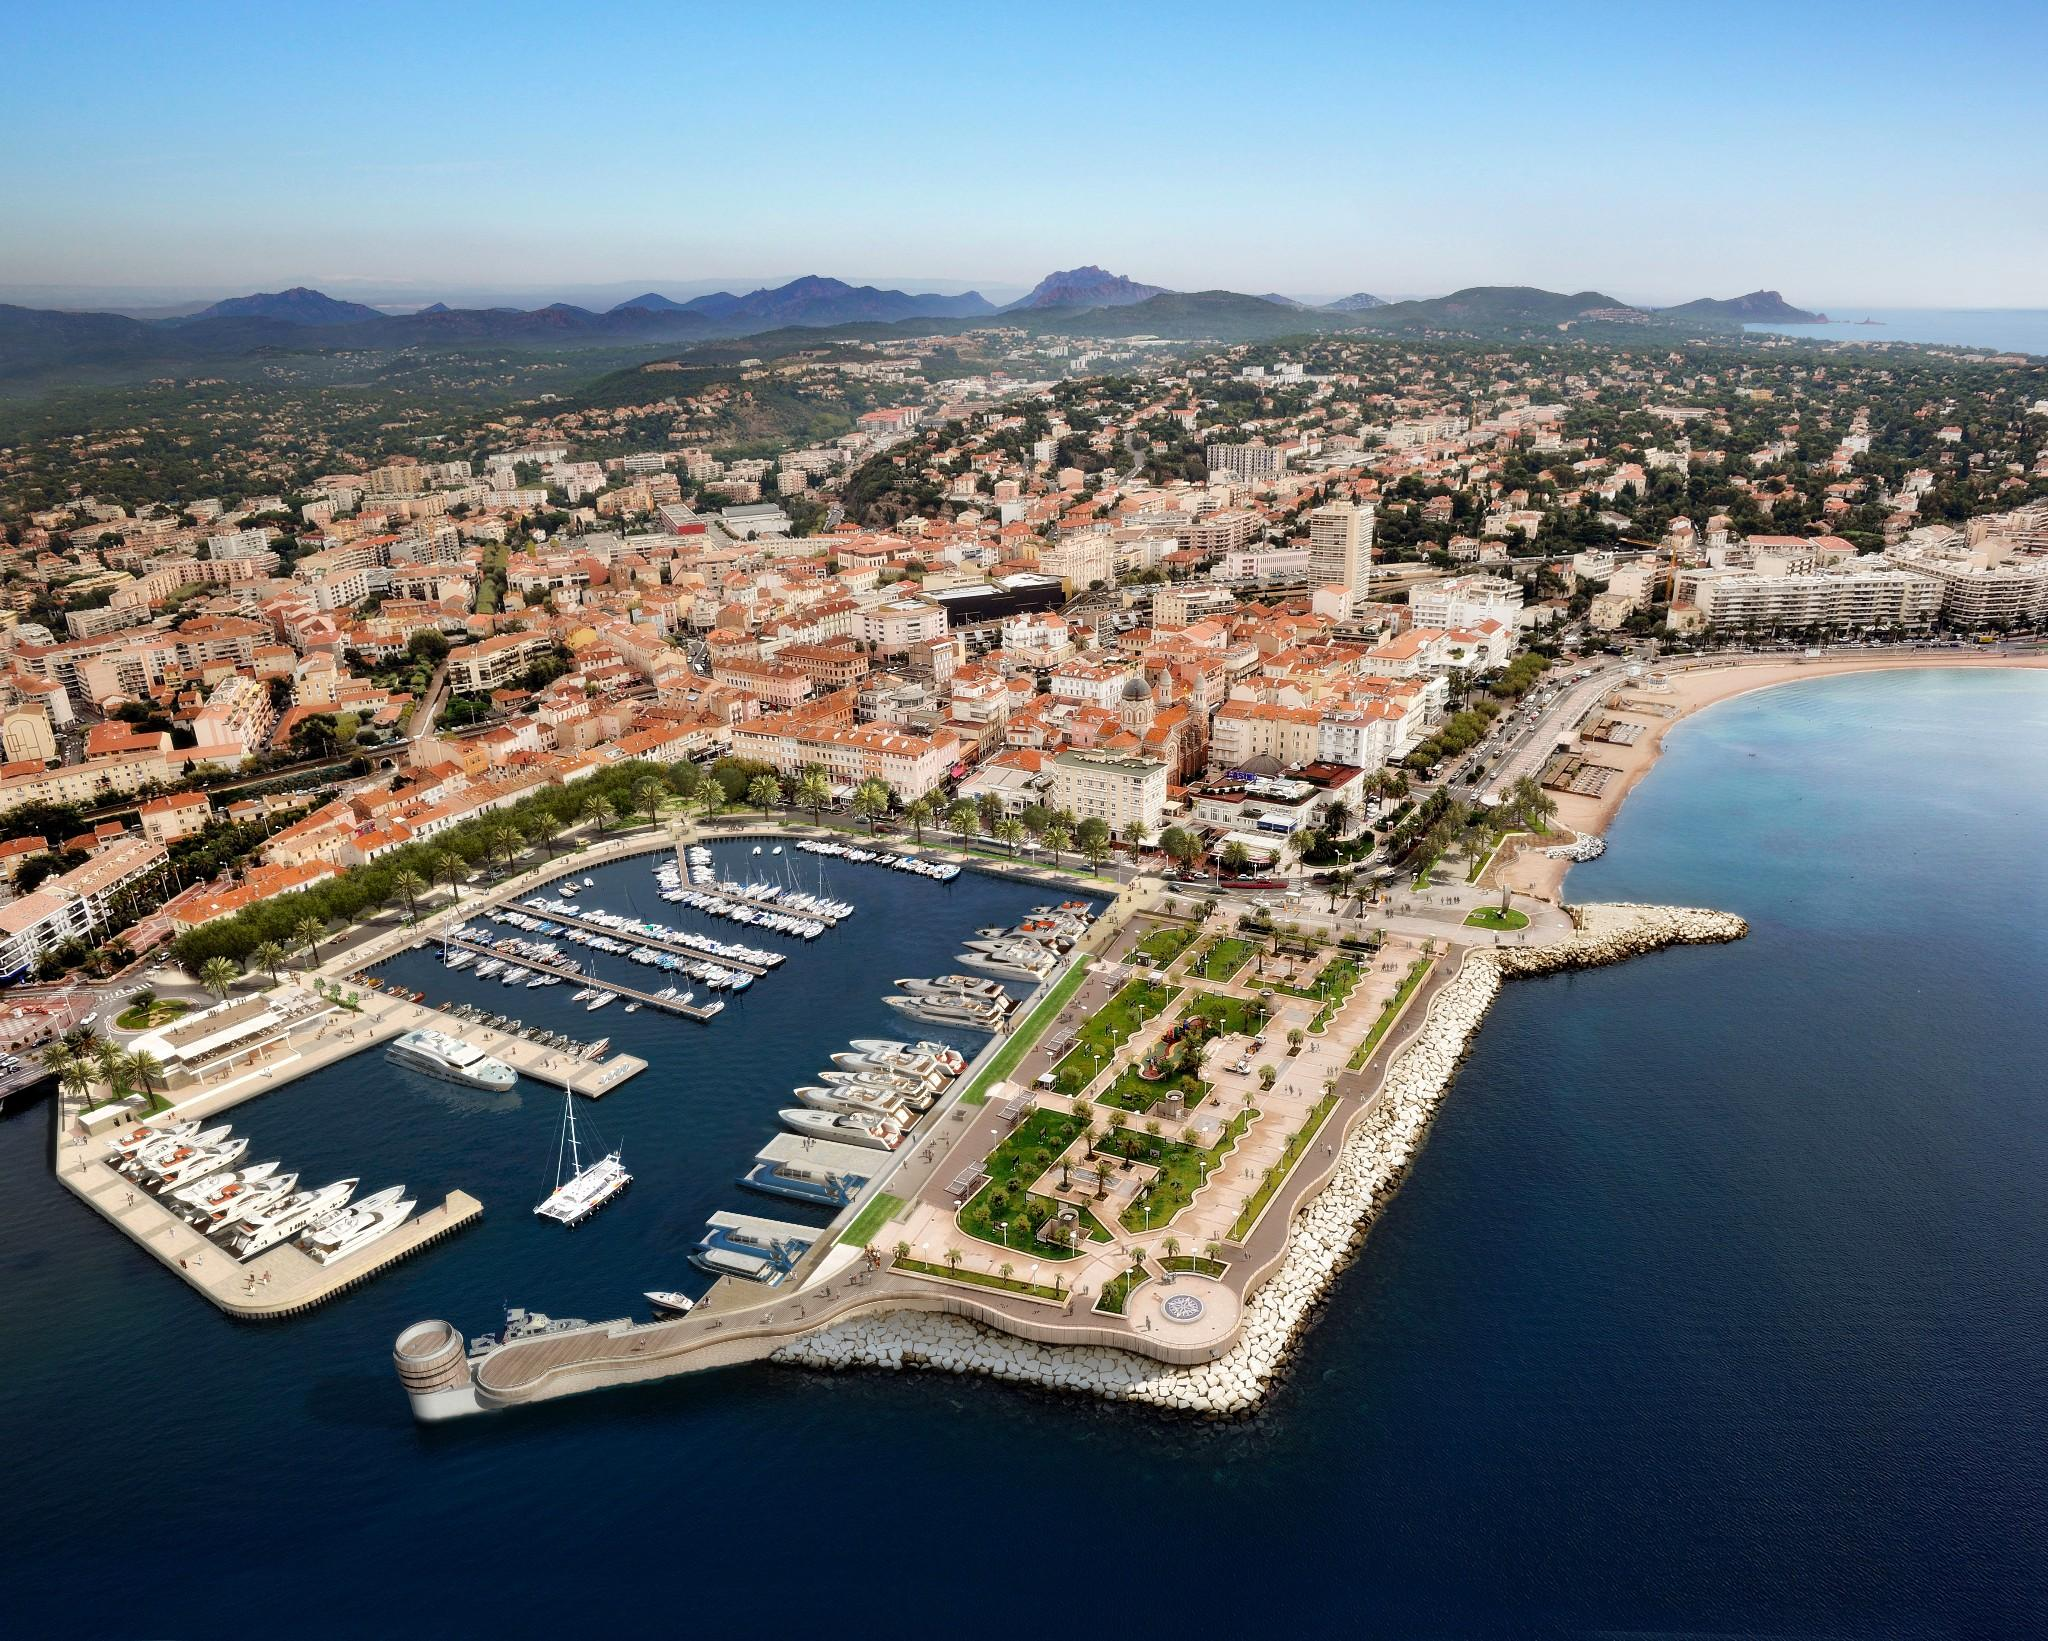 New St Raphael harbour